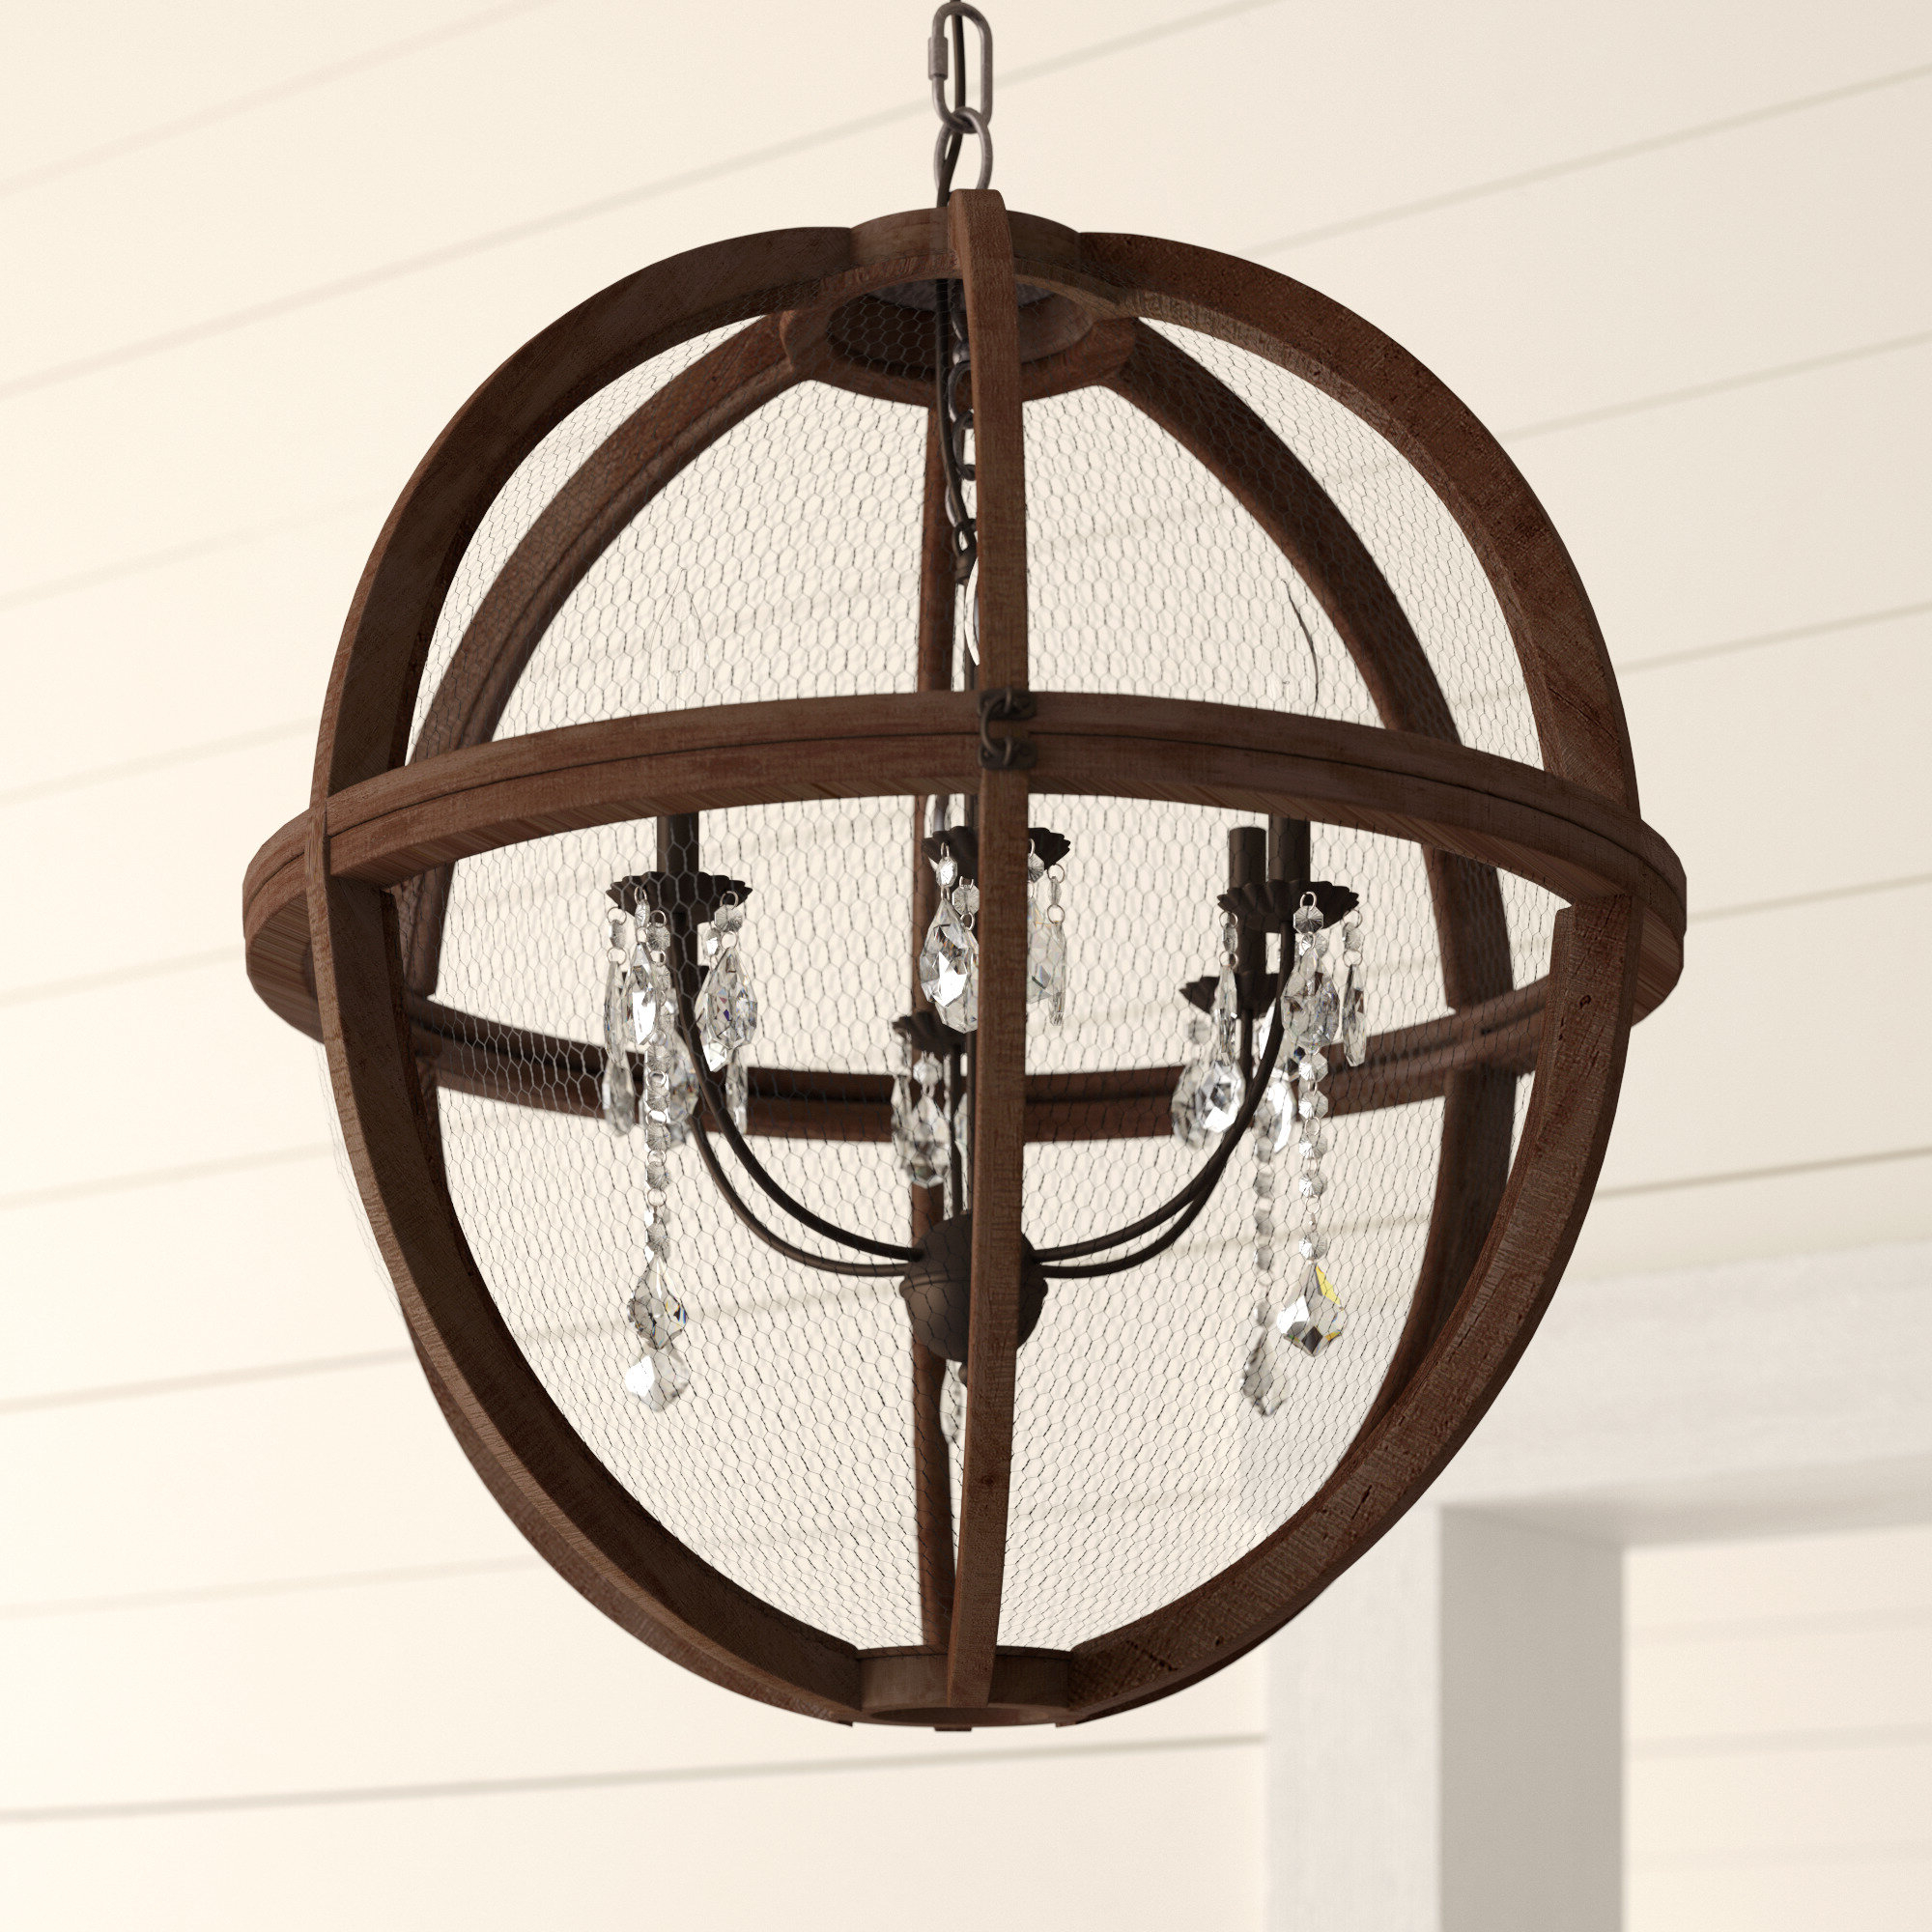 Filipe Globe Chandelier For Most Up To Date Filipe Globe Chandeliers (Gallery 1 of 20)